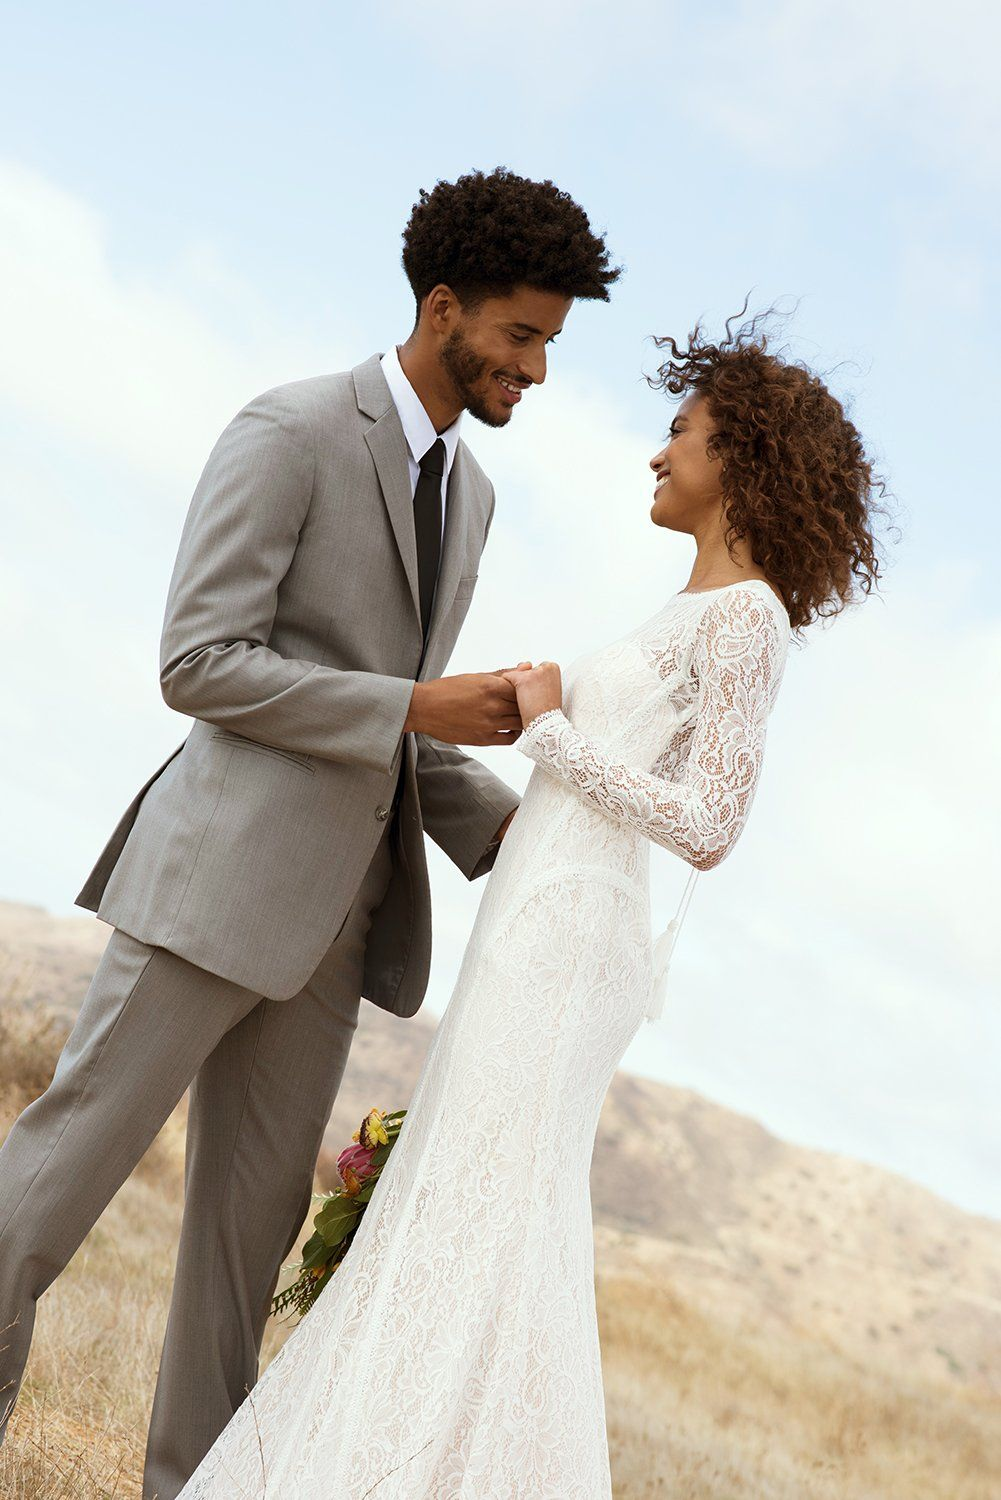 This long sleeve lace sheath wedding dress is great for a boho